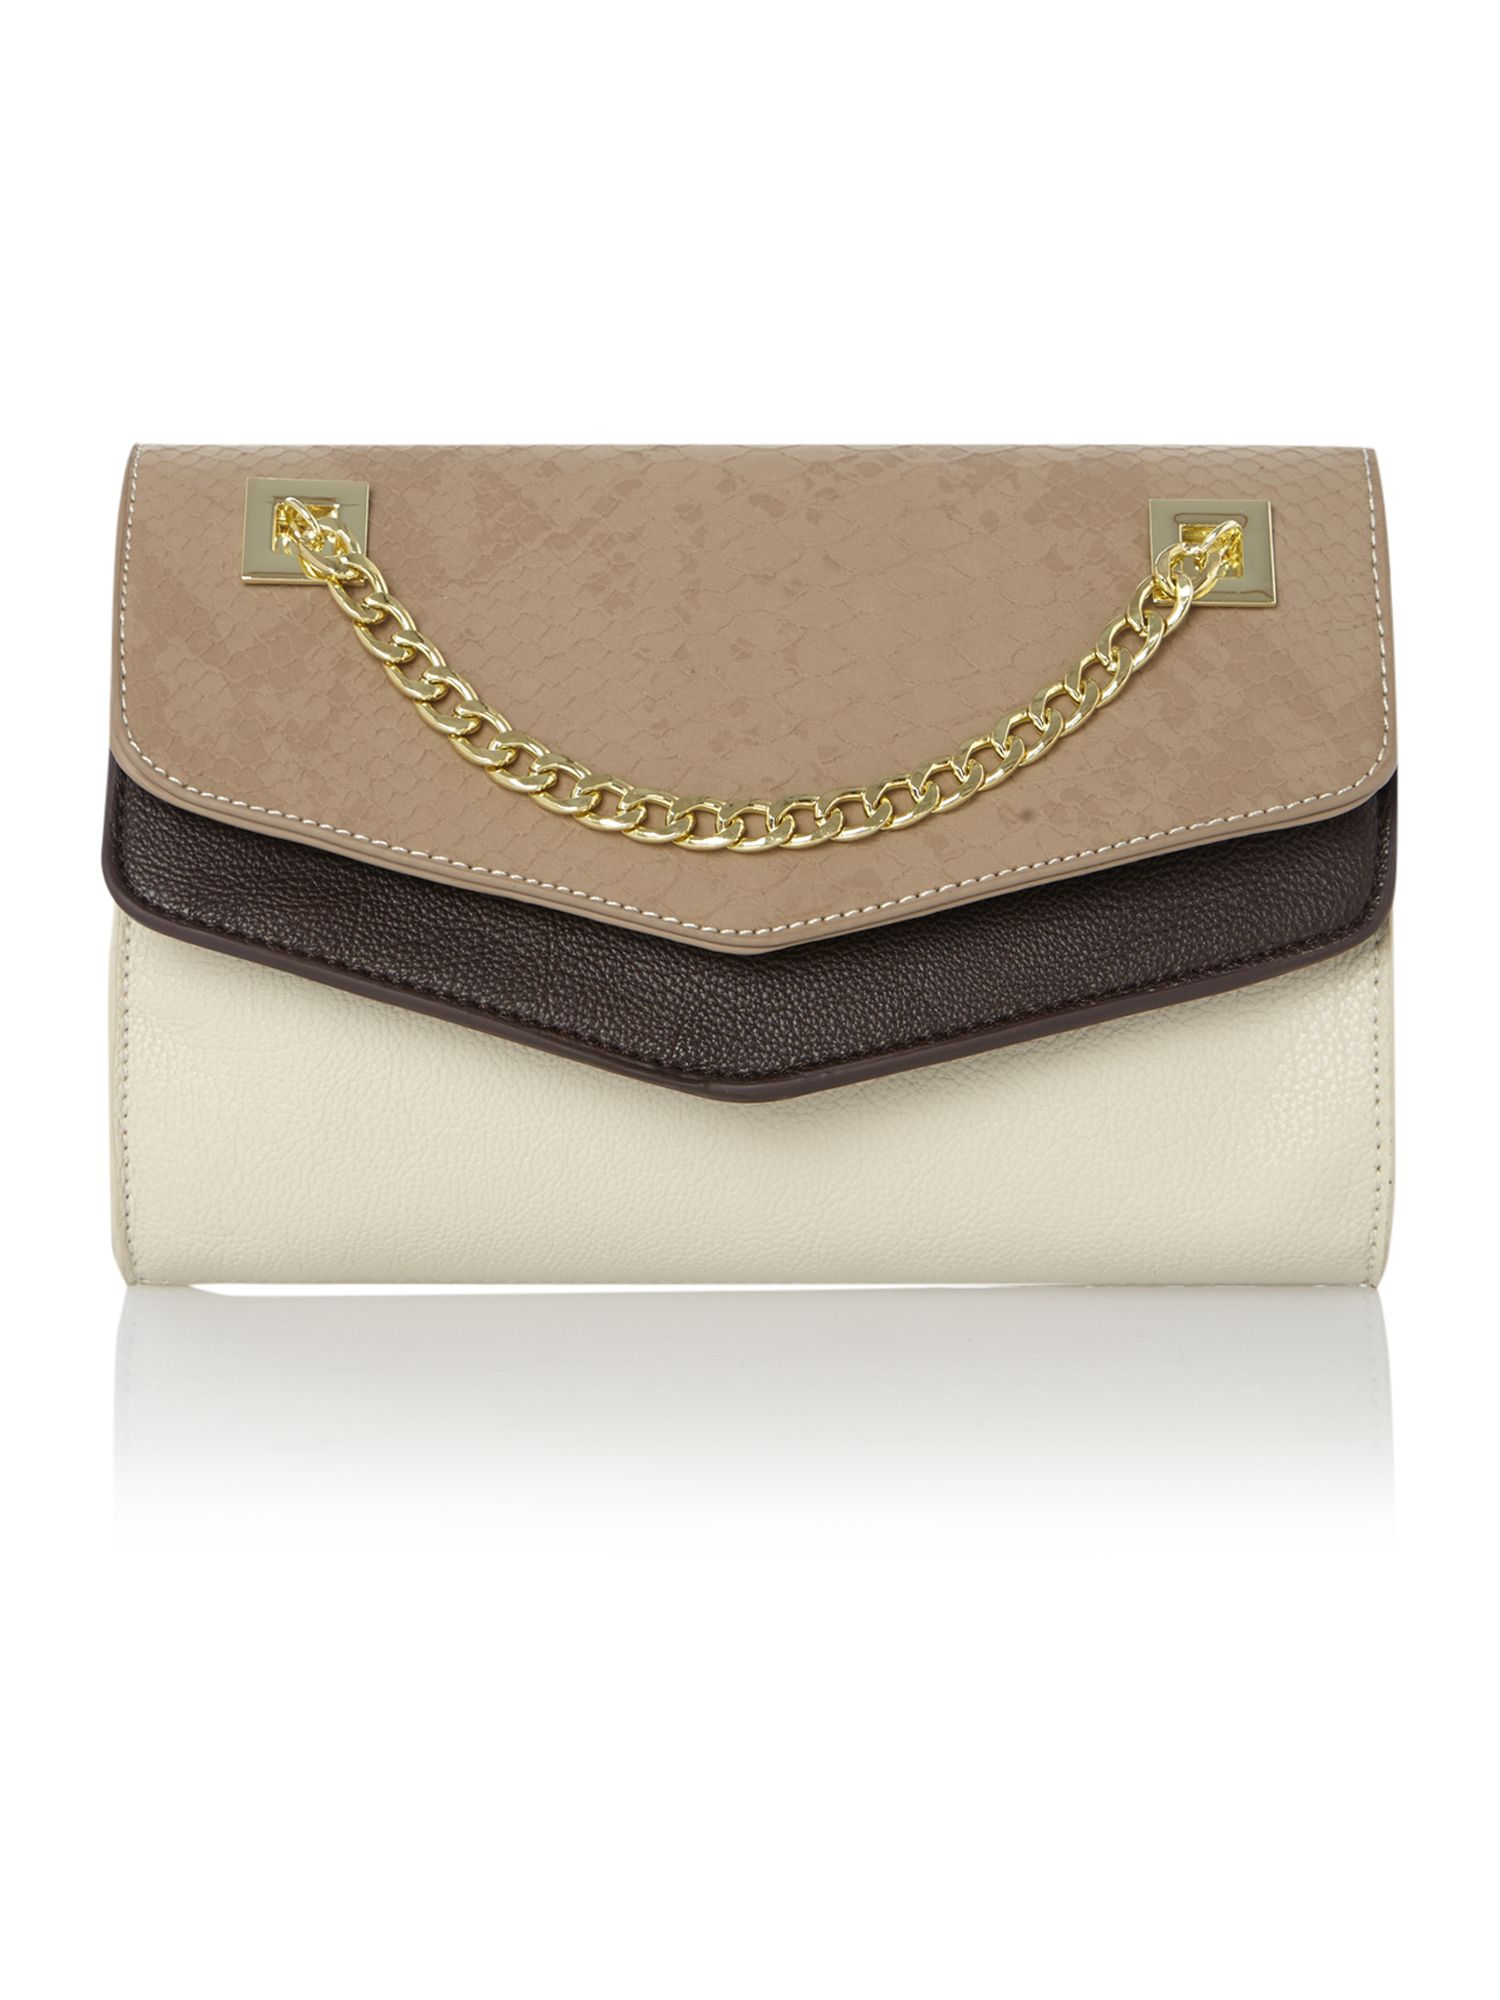 Ida chain clutch bag